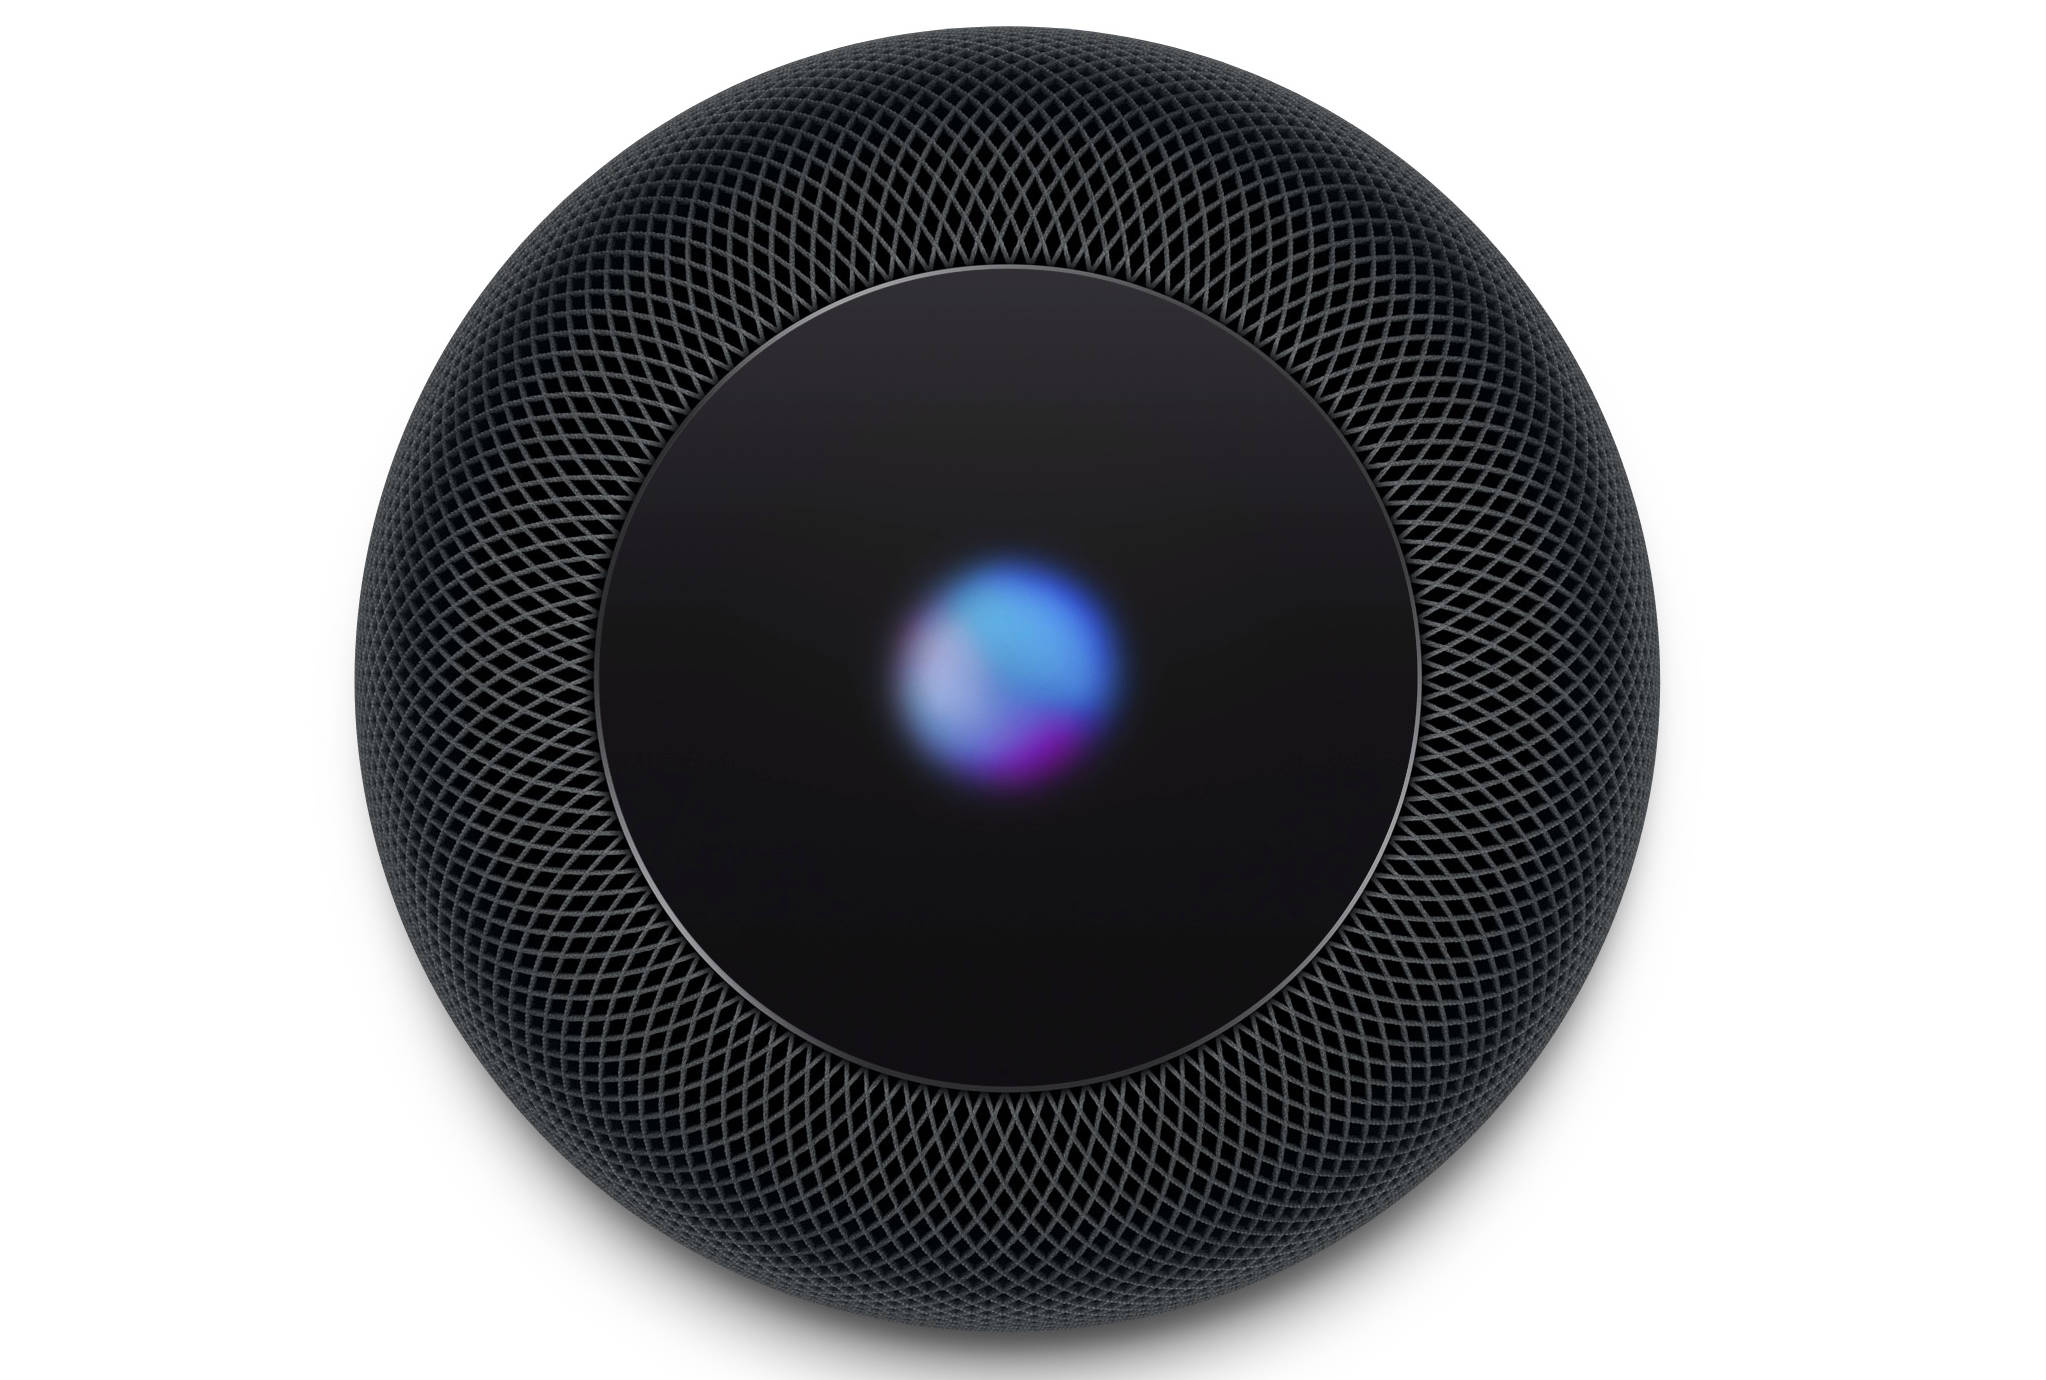 Apple HomePod bez AirPlay 2 i multi-room Siri iOS 12 beta Siri Asystent Google Amazon Alexa Microsoft Cortana